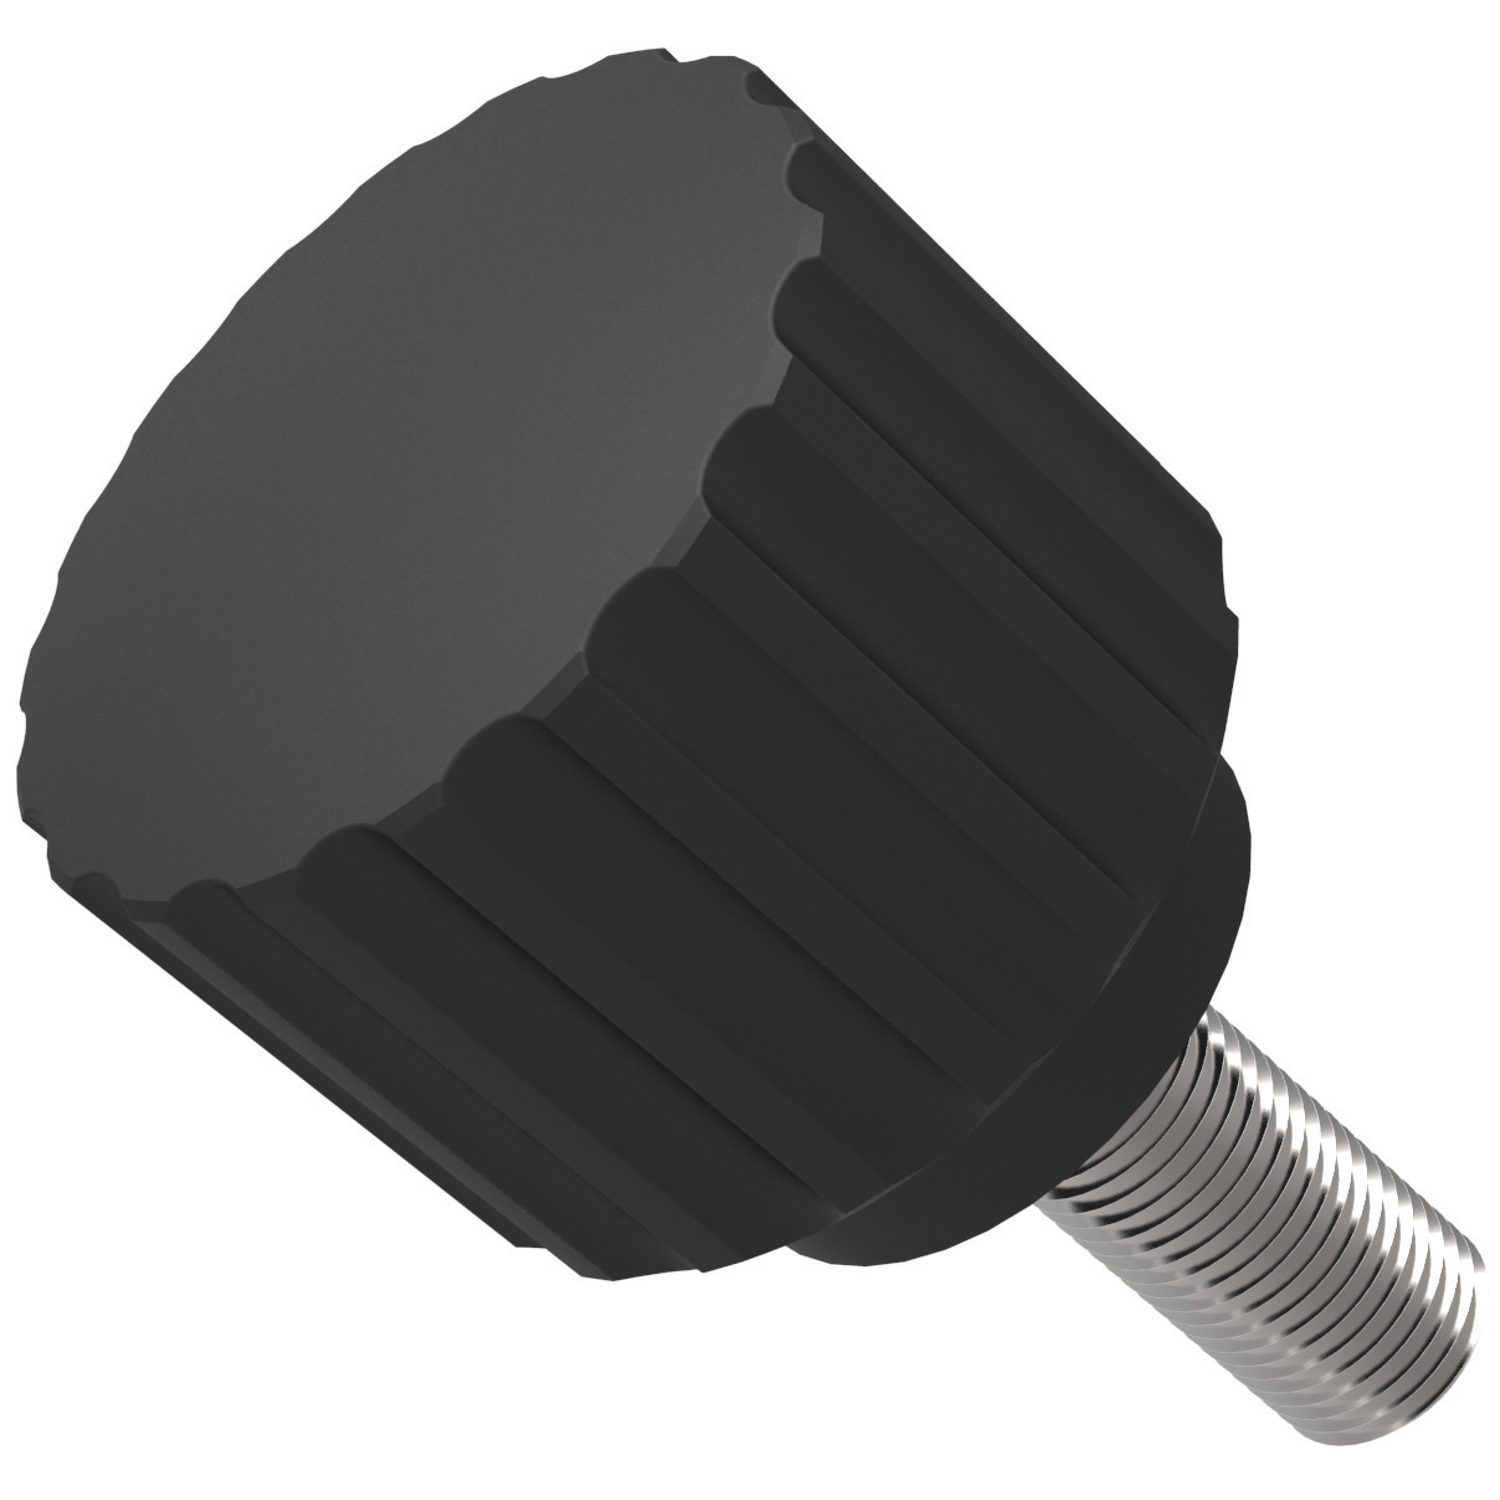 P0444 - Plastic Head Thumbscrews